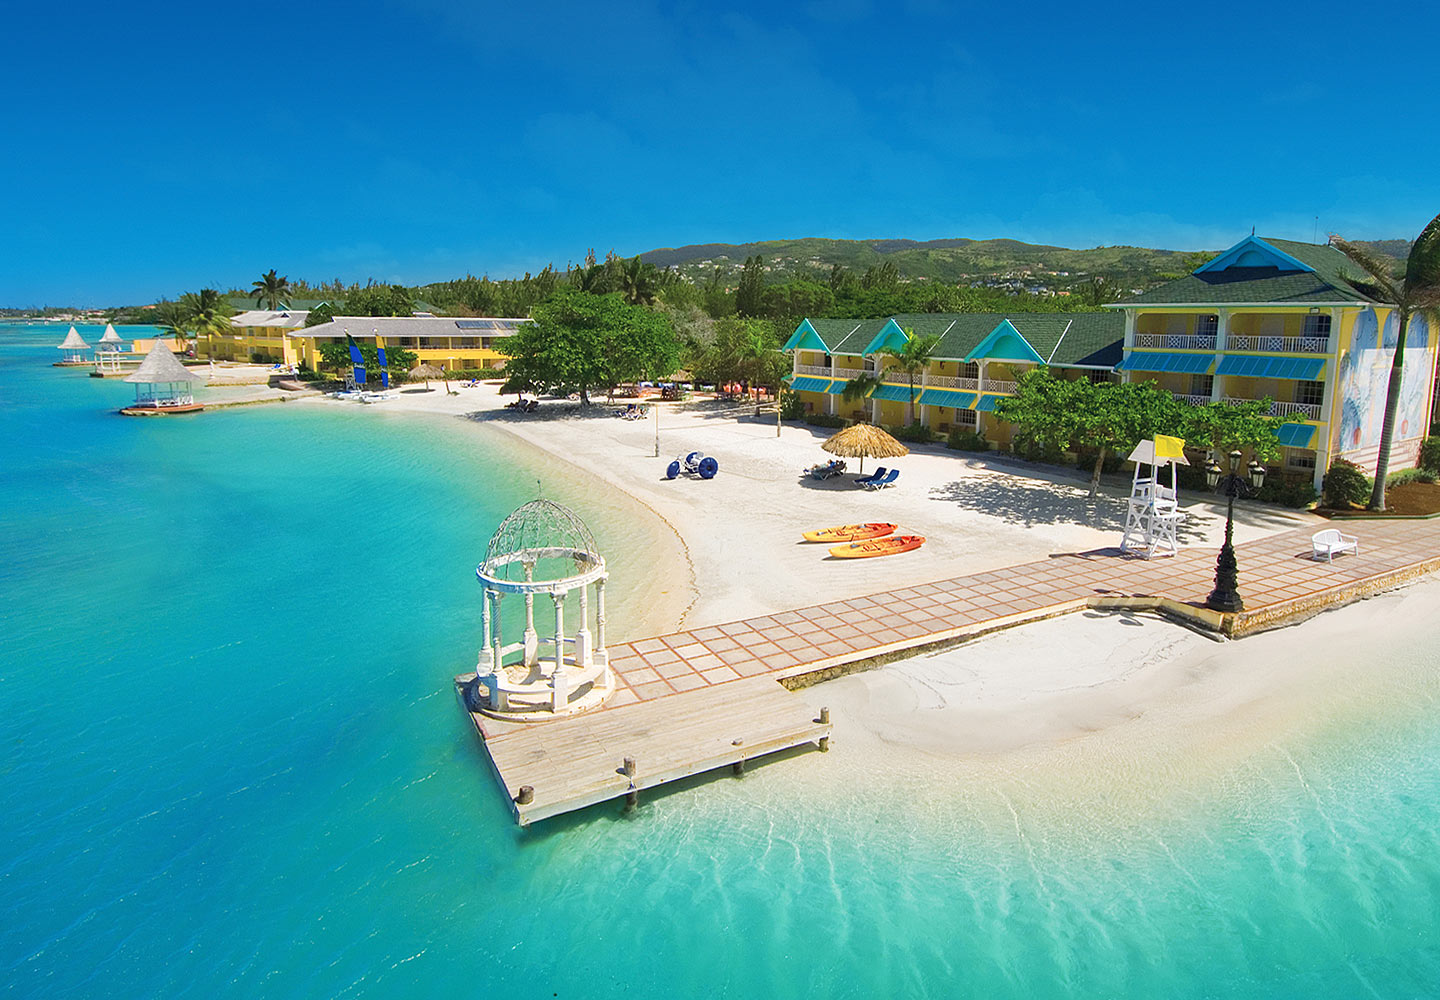 https://www.jamaica-reggae-music-vacation.com/Hotels-In-Montego-Bay-Jamaica.html, Sandals Royal Caribbean Resort